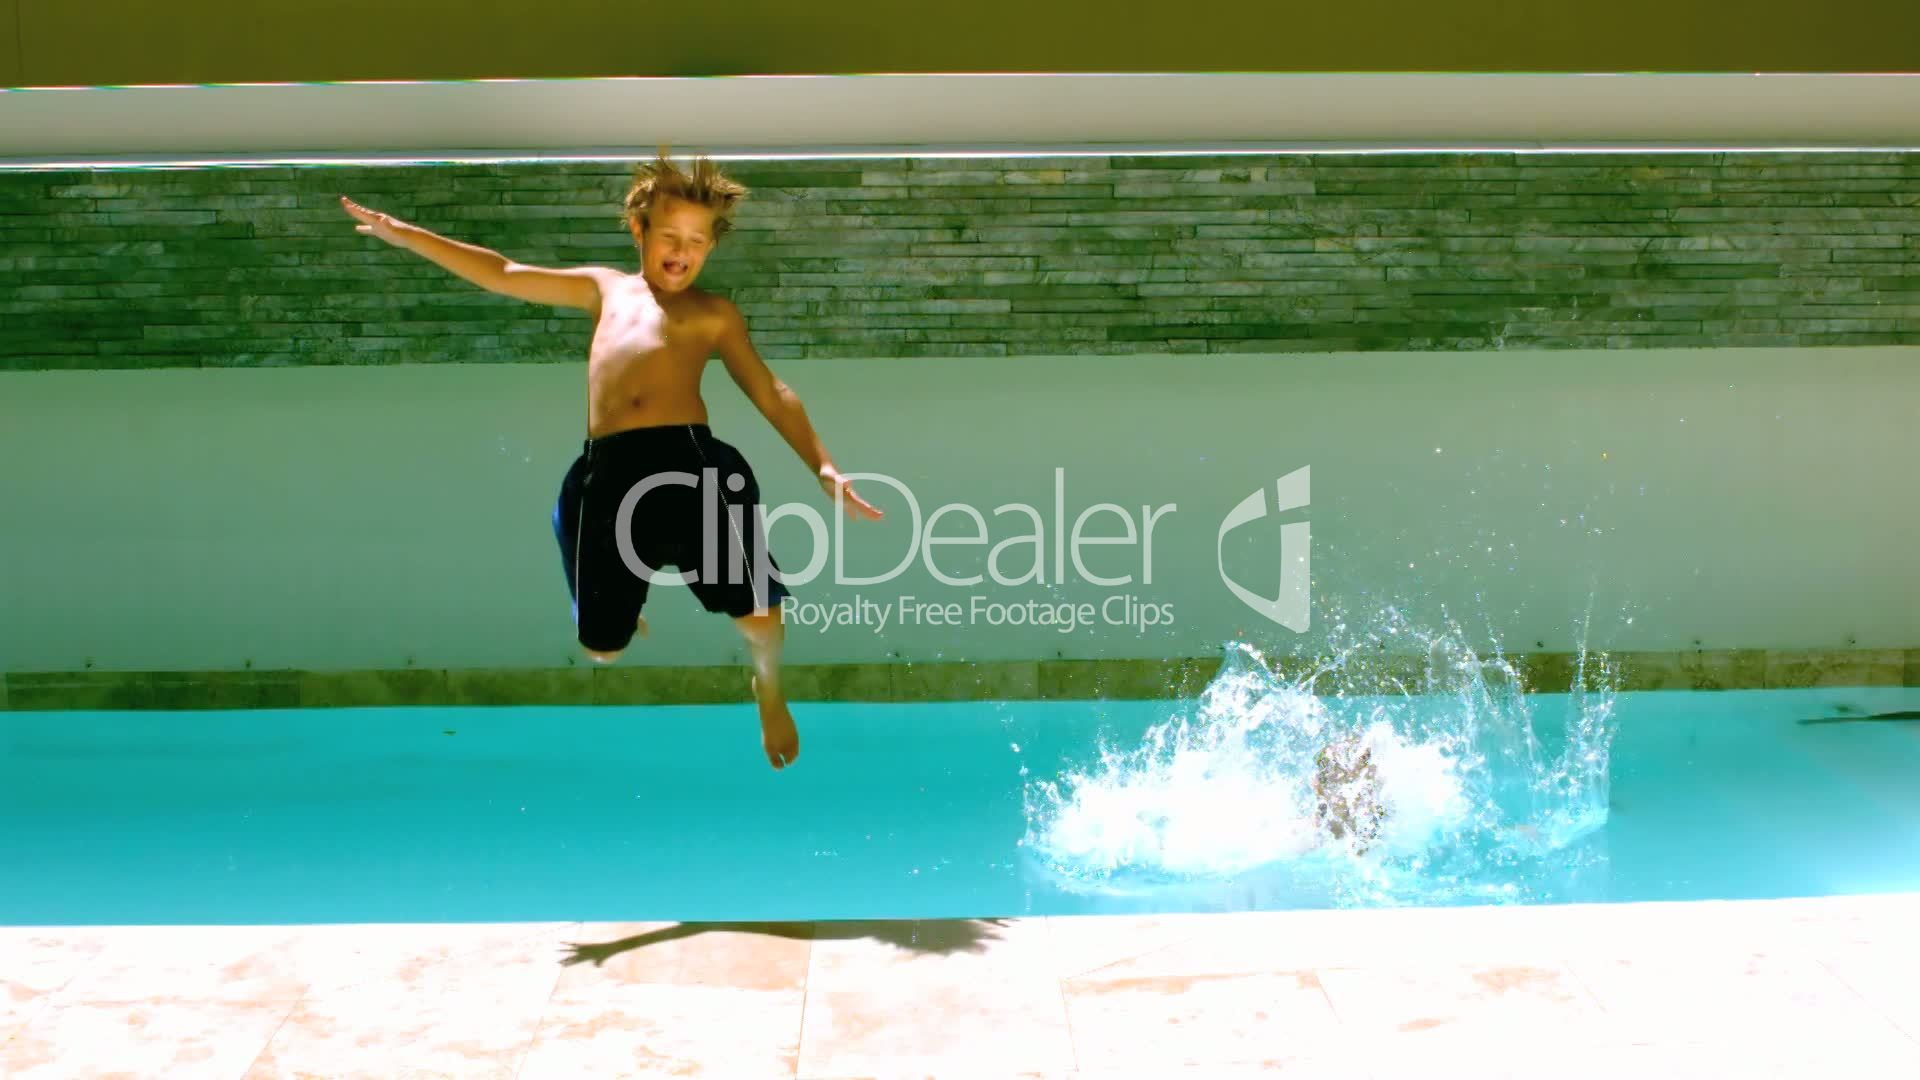 Siblings jumping together in the swimming pool: Royalty-free video